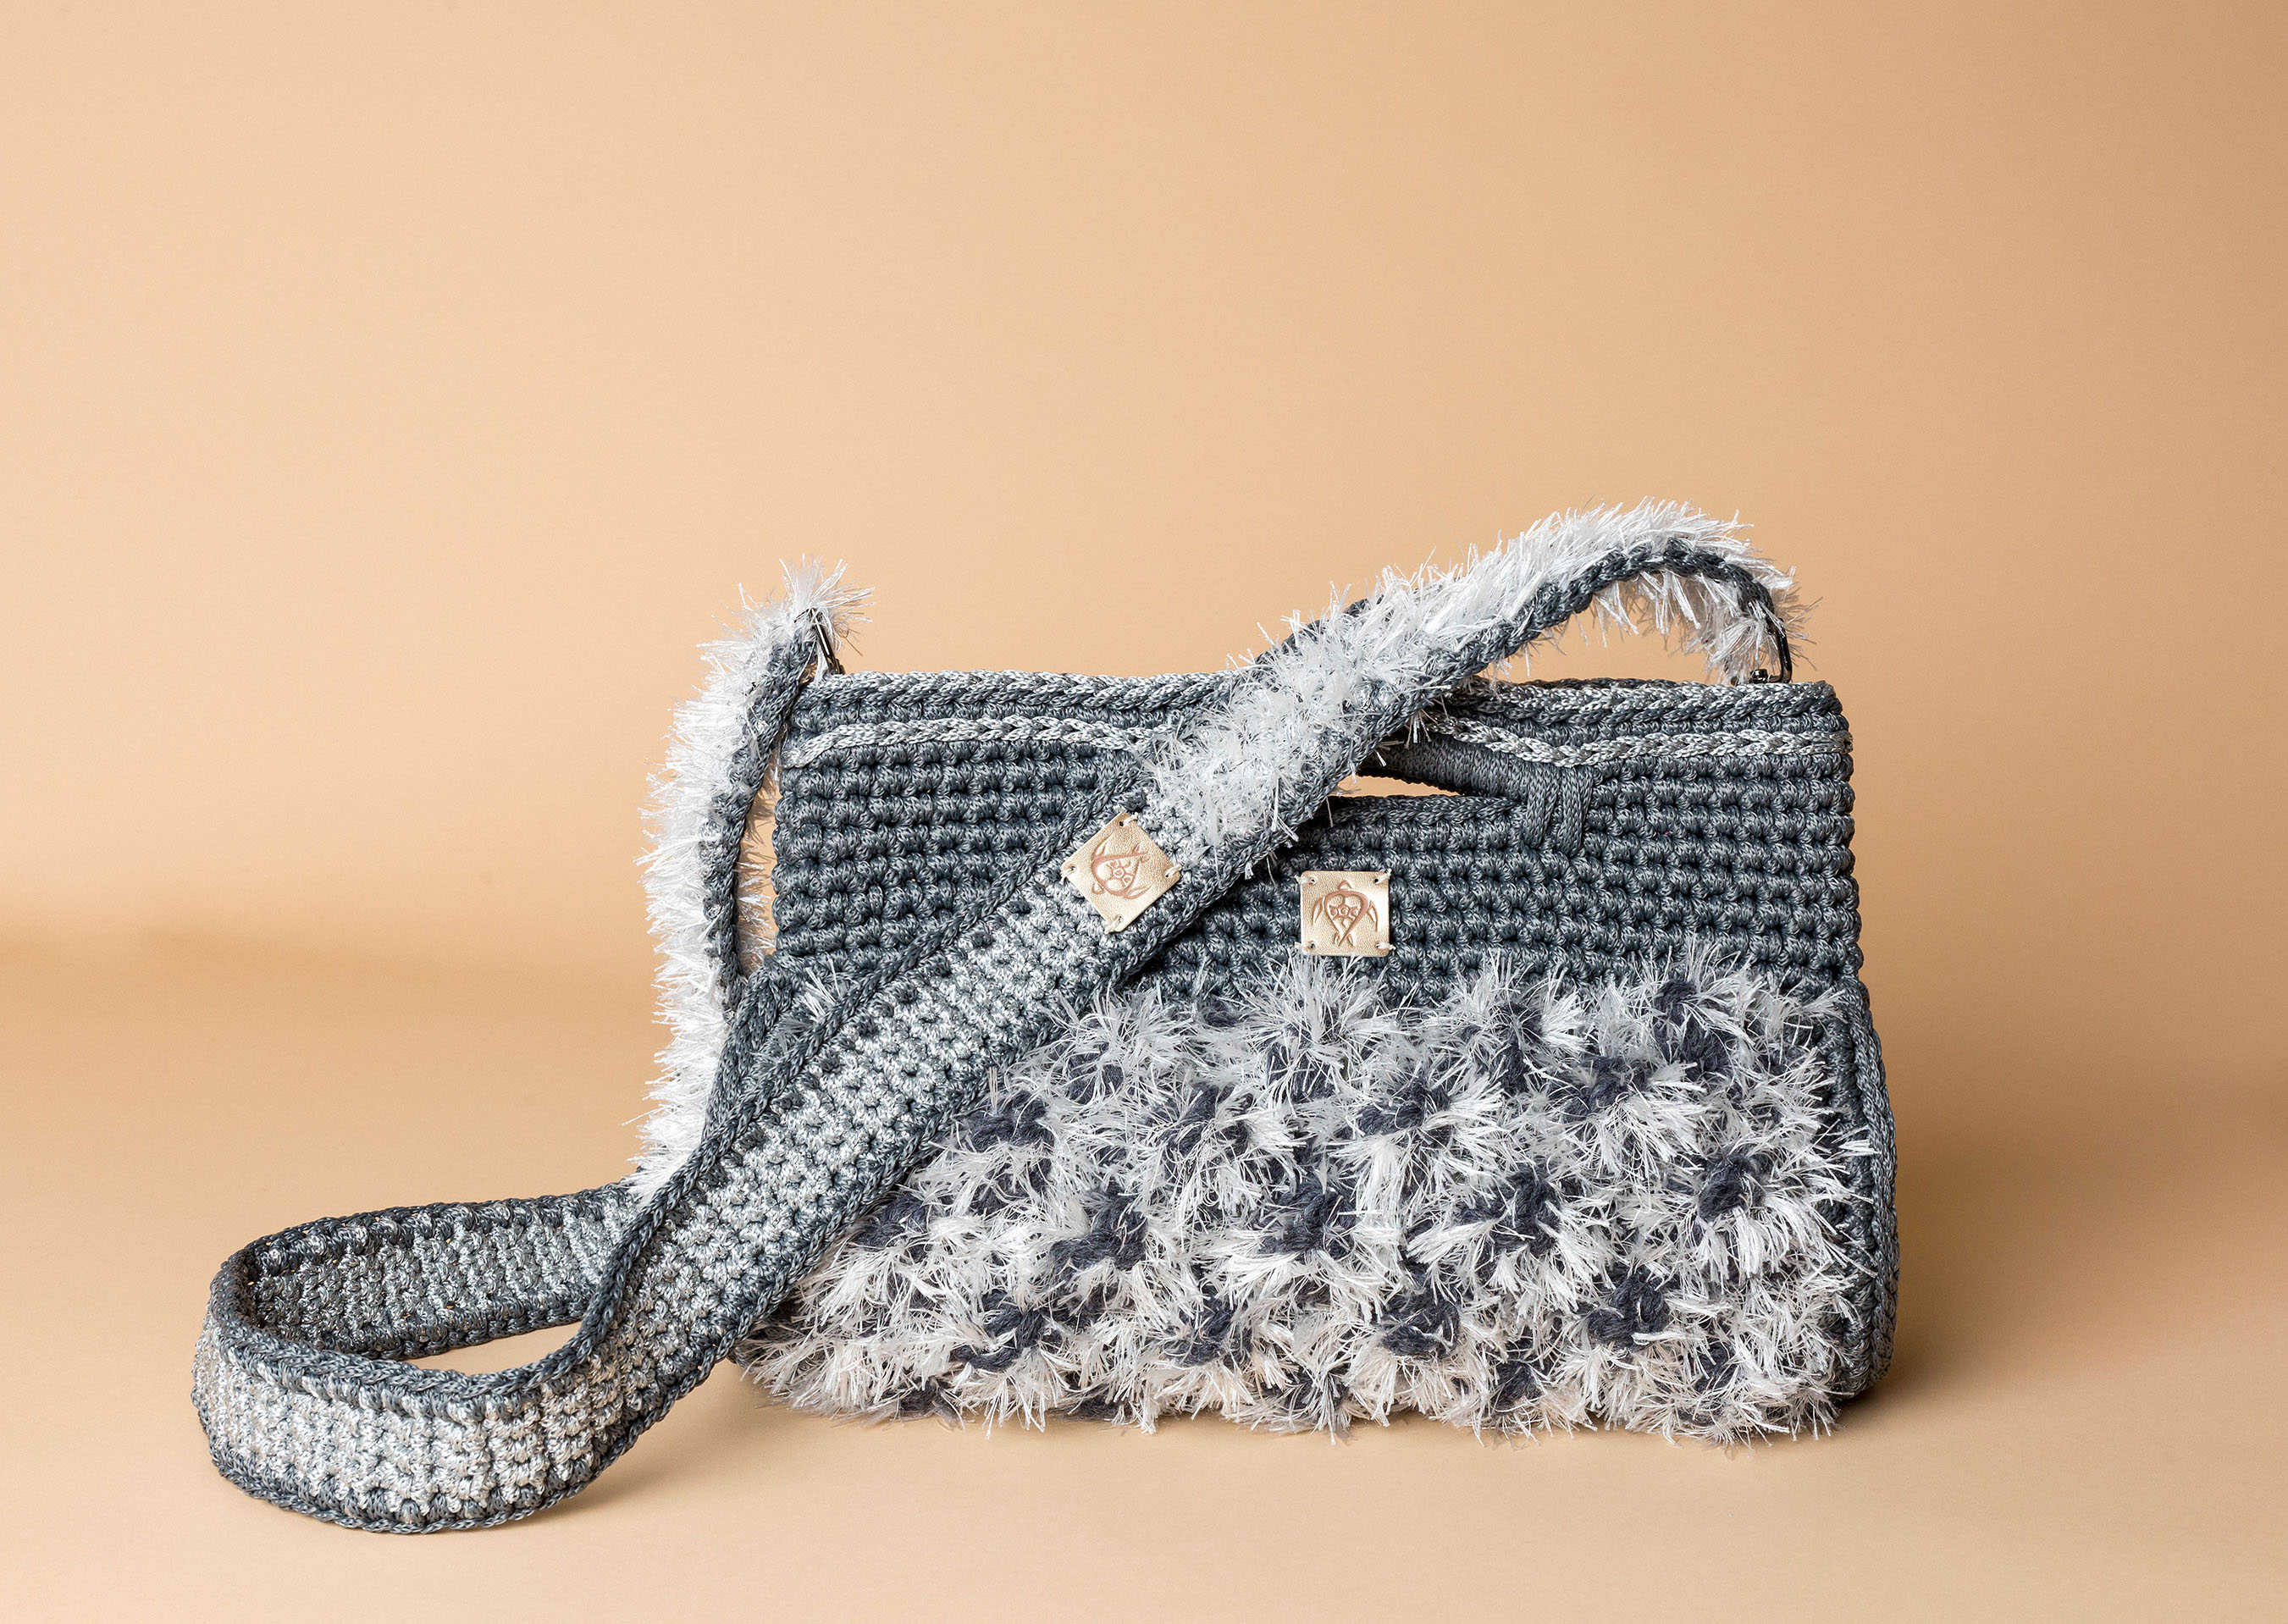 knitted handbag in grey